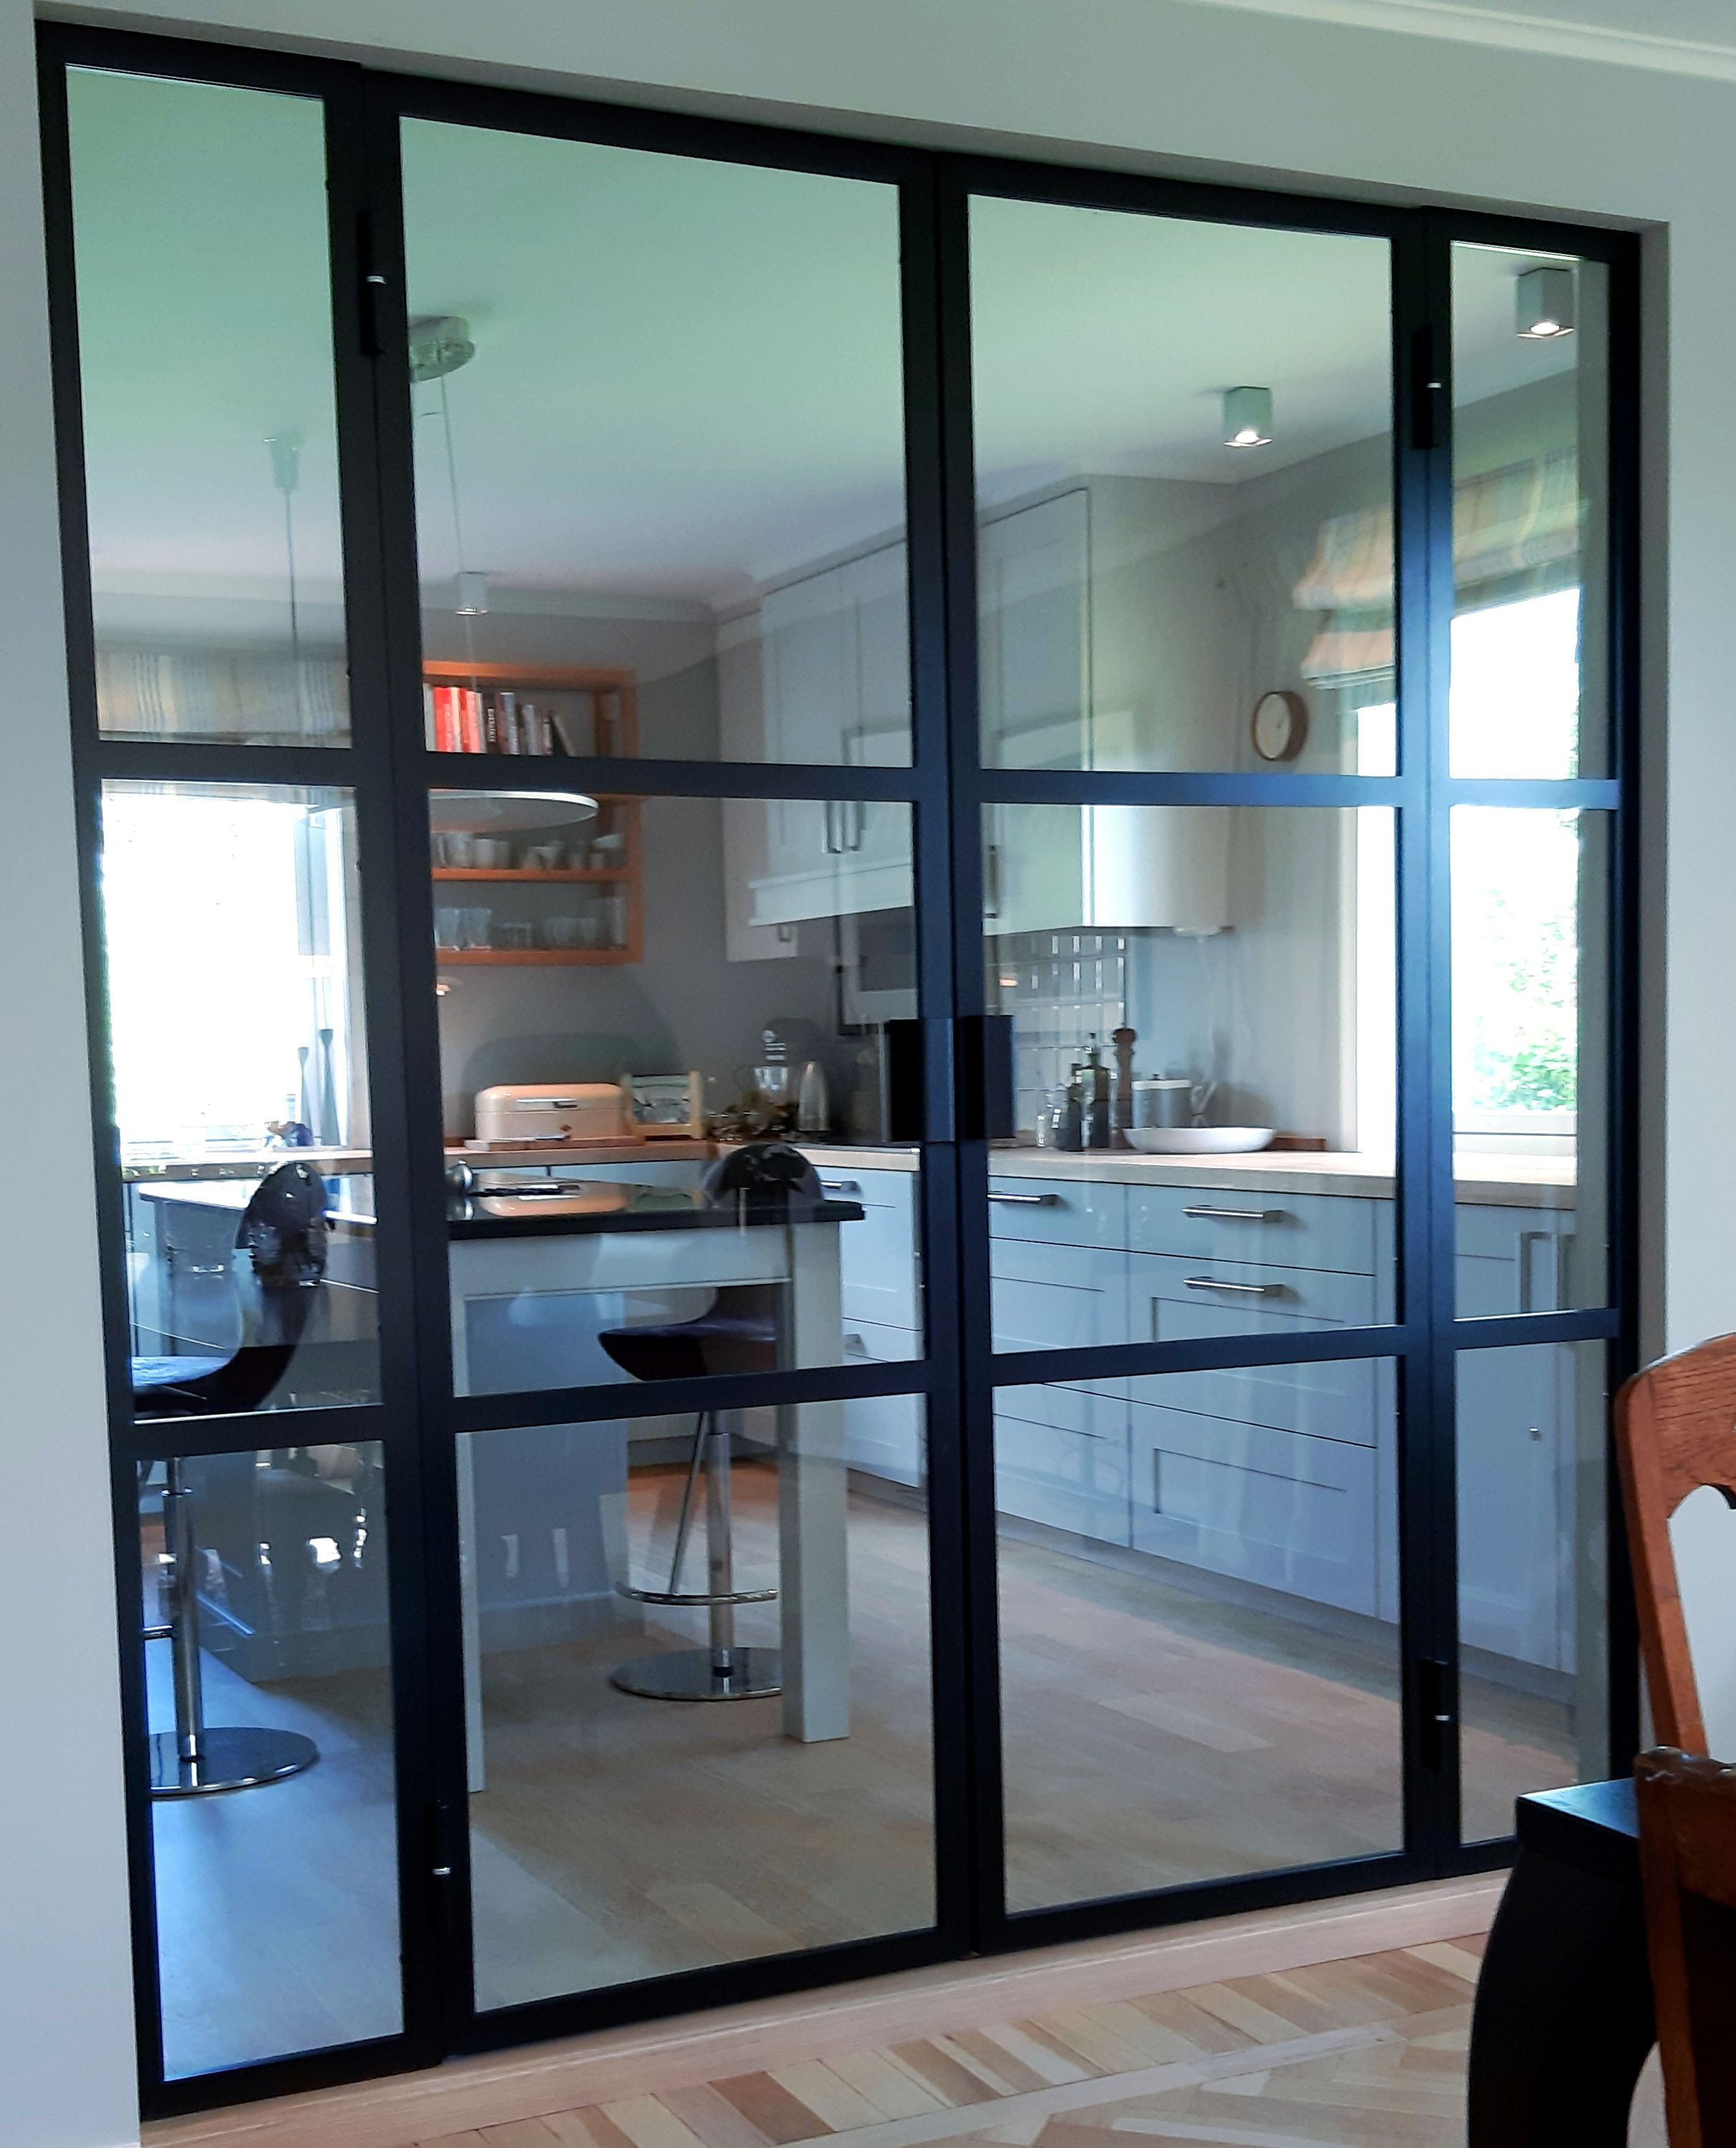 New double french glass and steel doors delivered to clients…